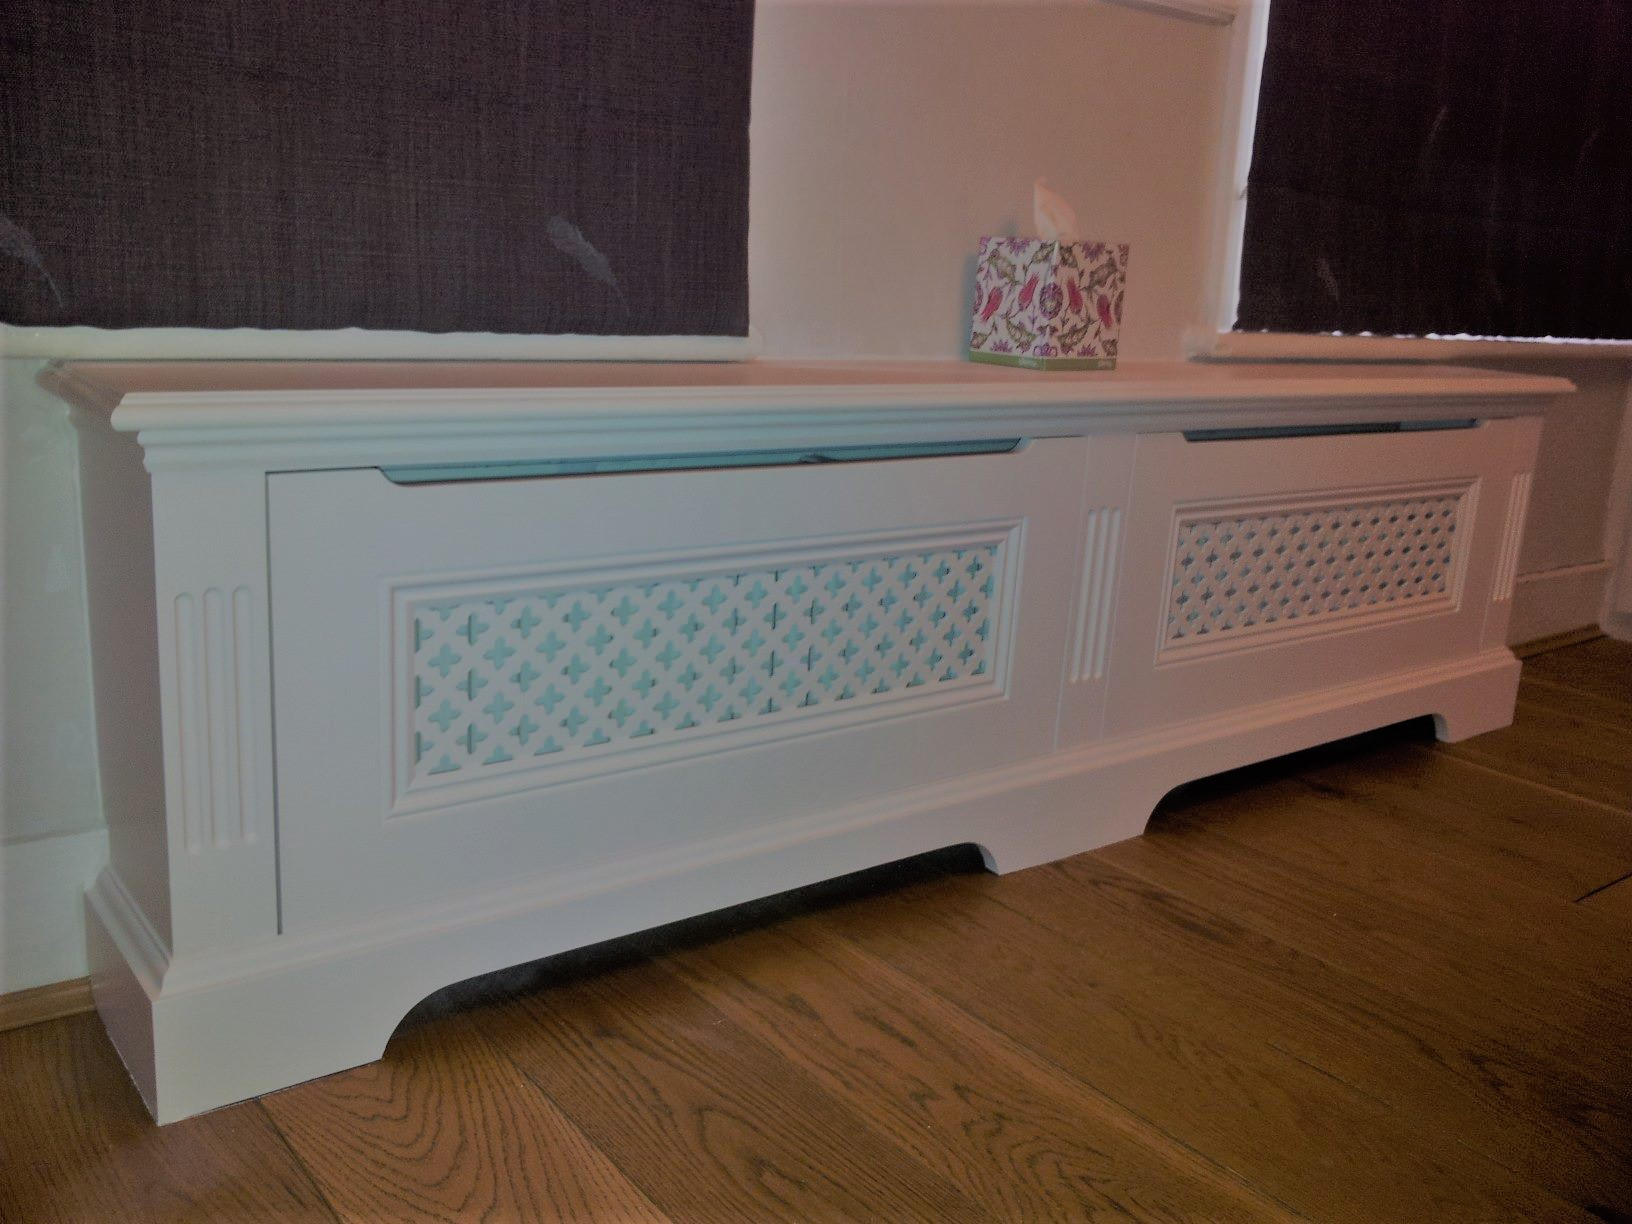 A fluted classic radiator cover with ornate nosing and underbead.